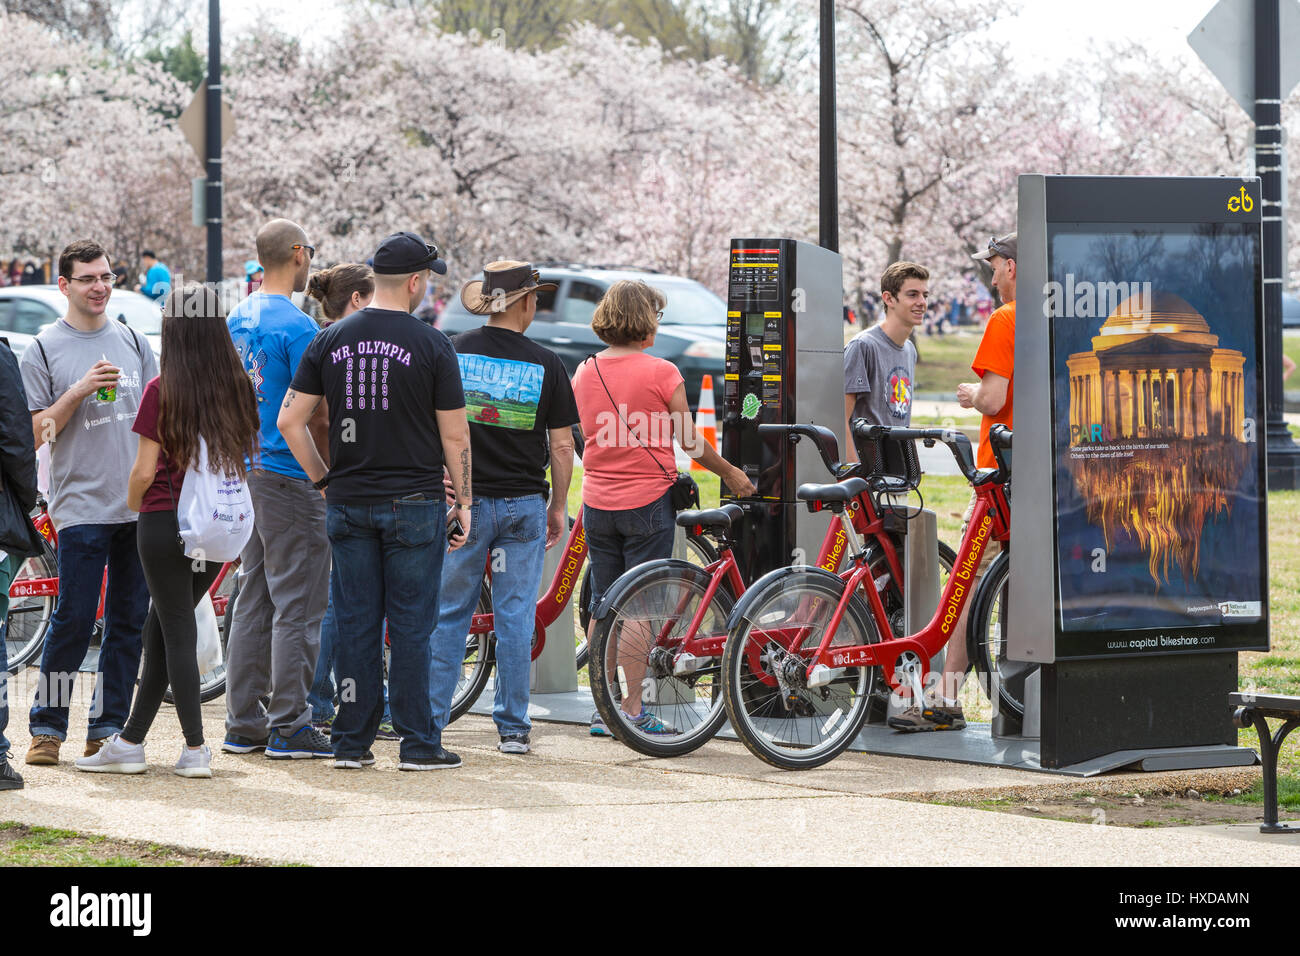 People rent bikes at a Capitol Bikeshare docking station in Washington, DC. - Stock Image